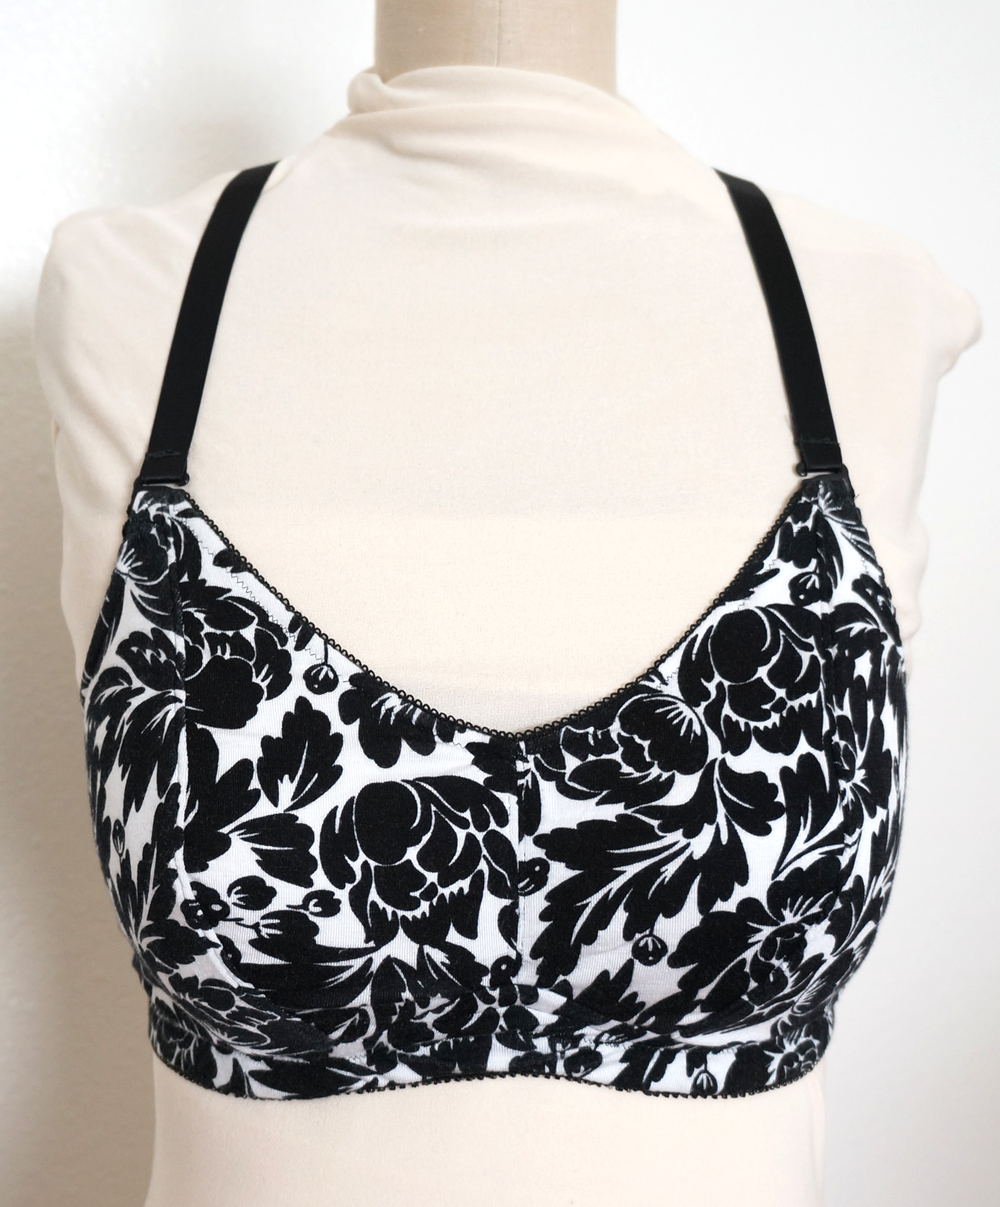 Lotus Pattern with Convertible Straps